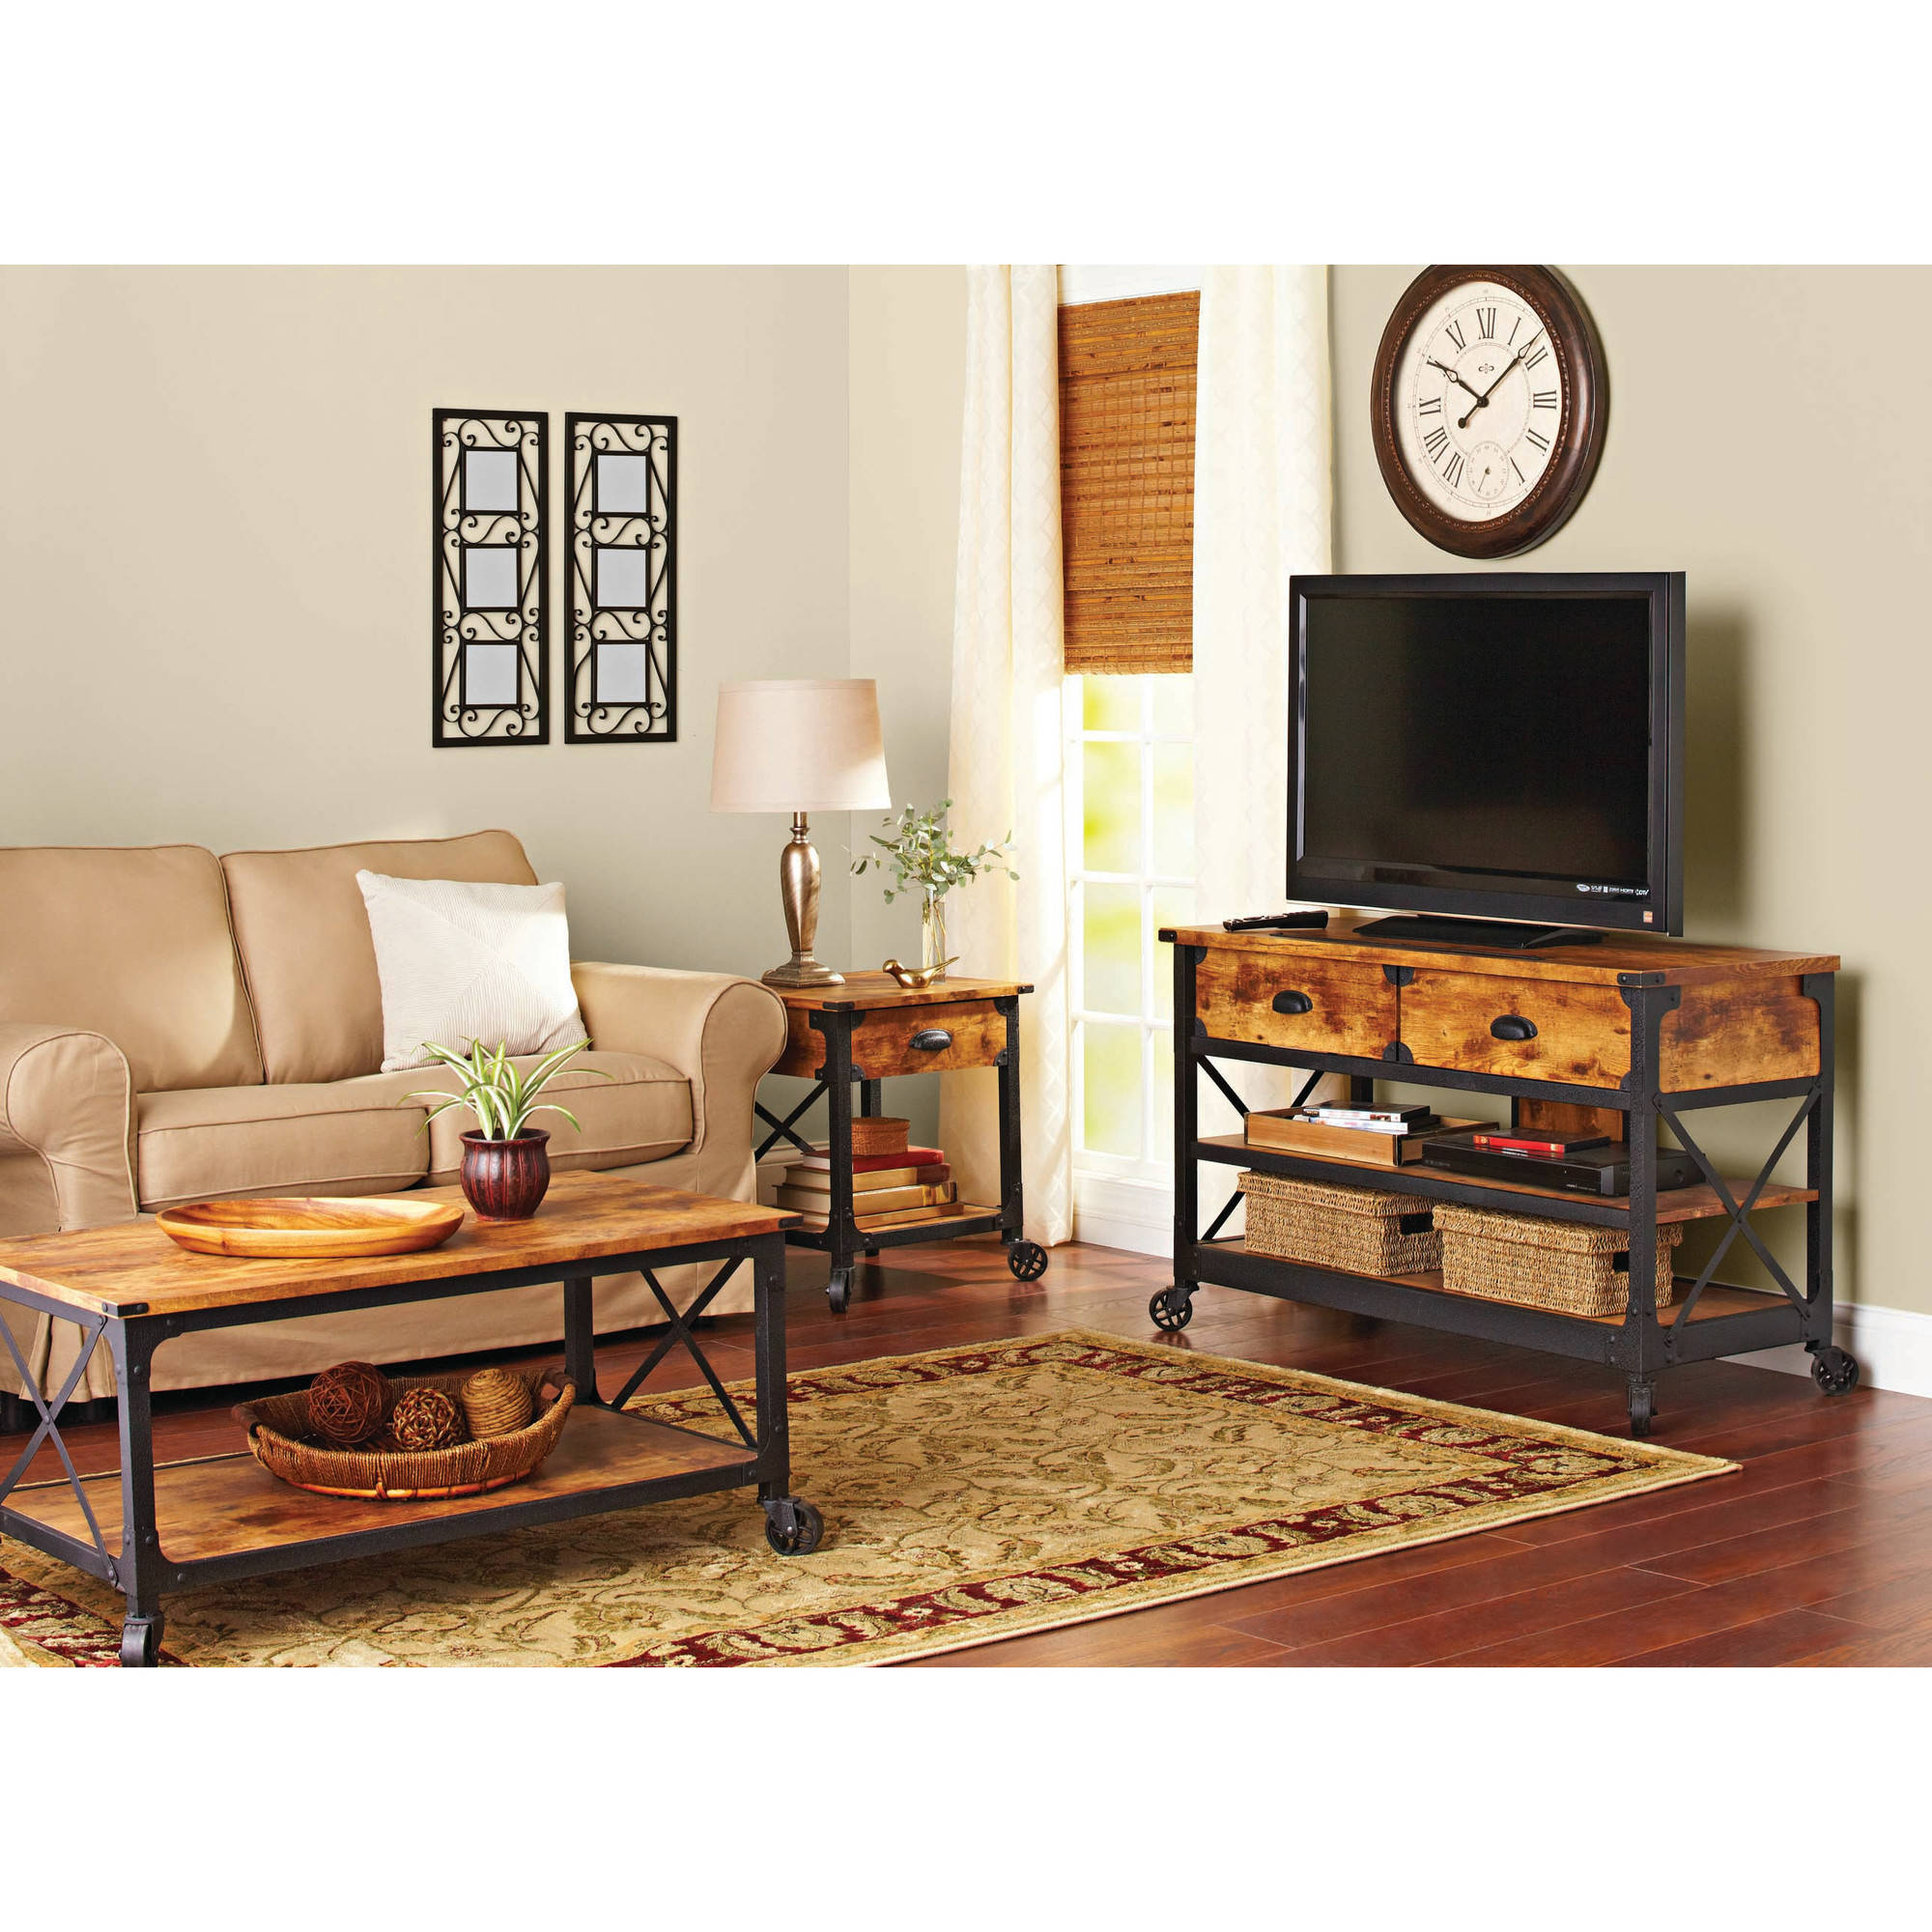 Better Homes & Gardens Rustic Country TV Stand for TVs up to 52 ...